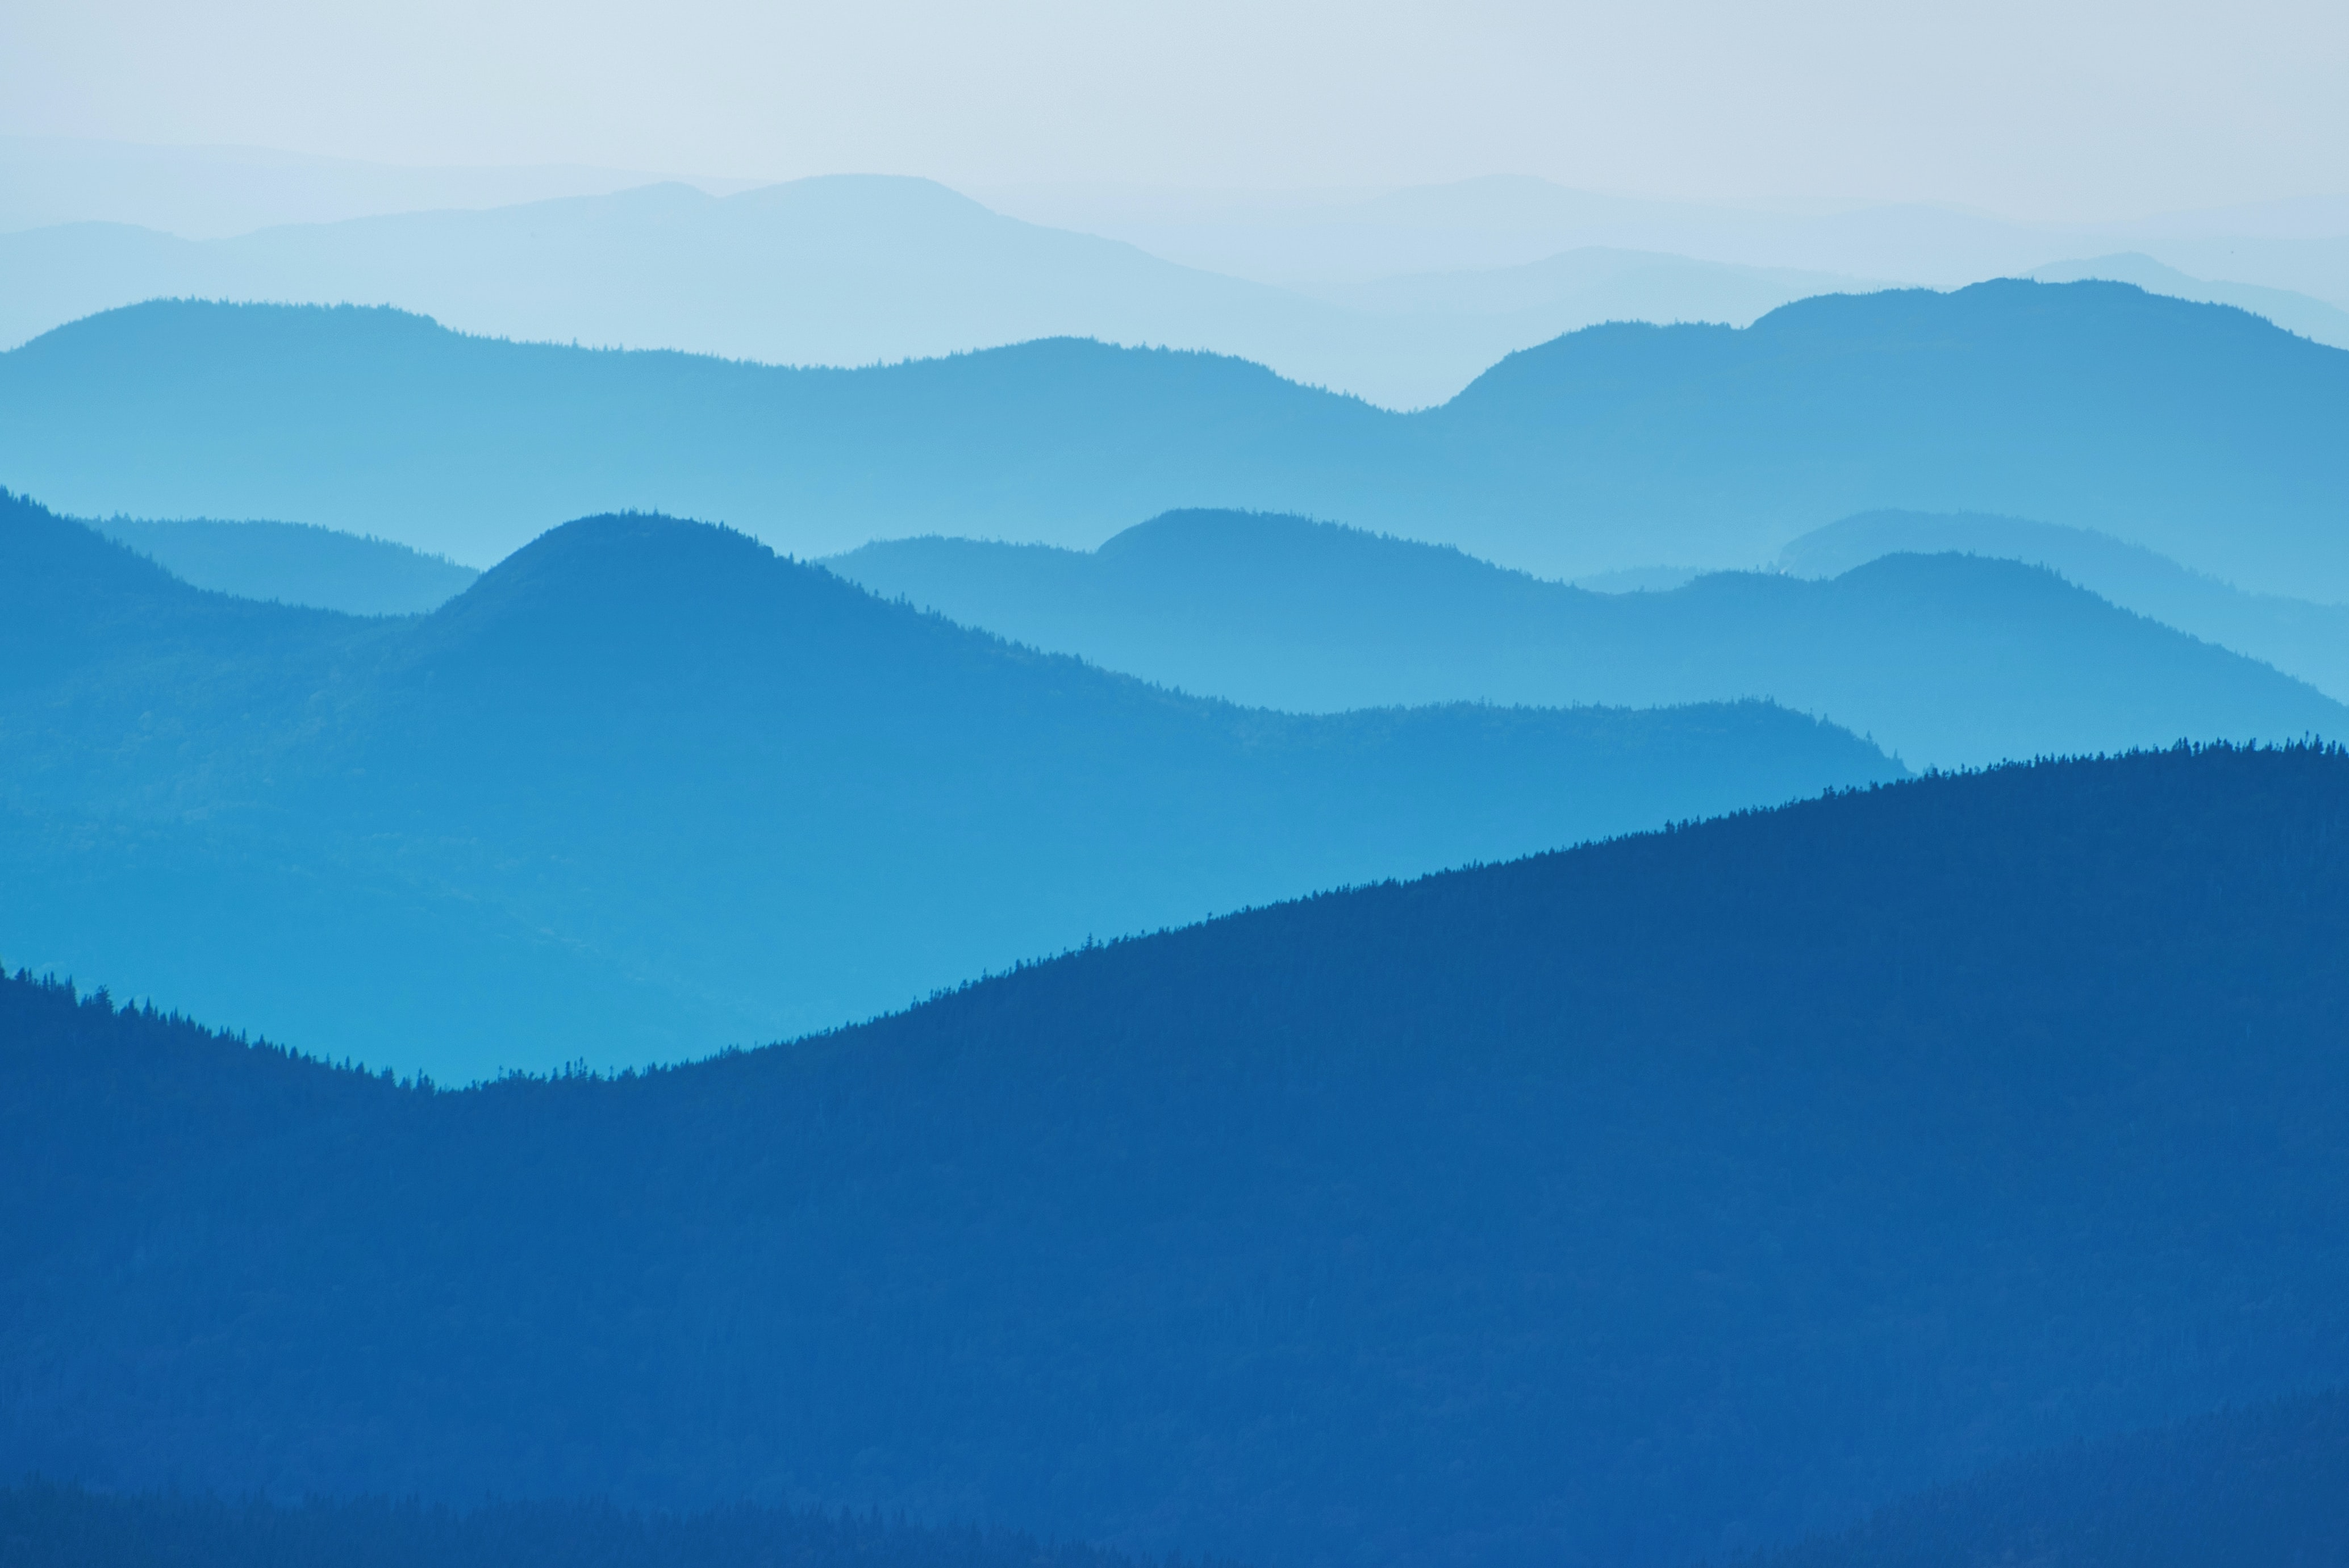 panoramic photography of mountains